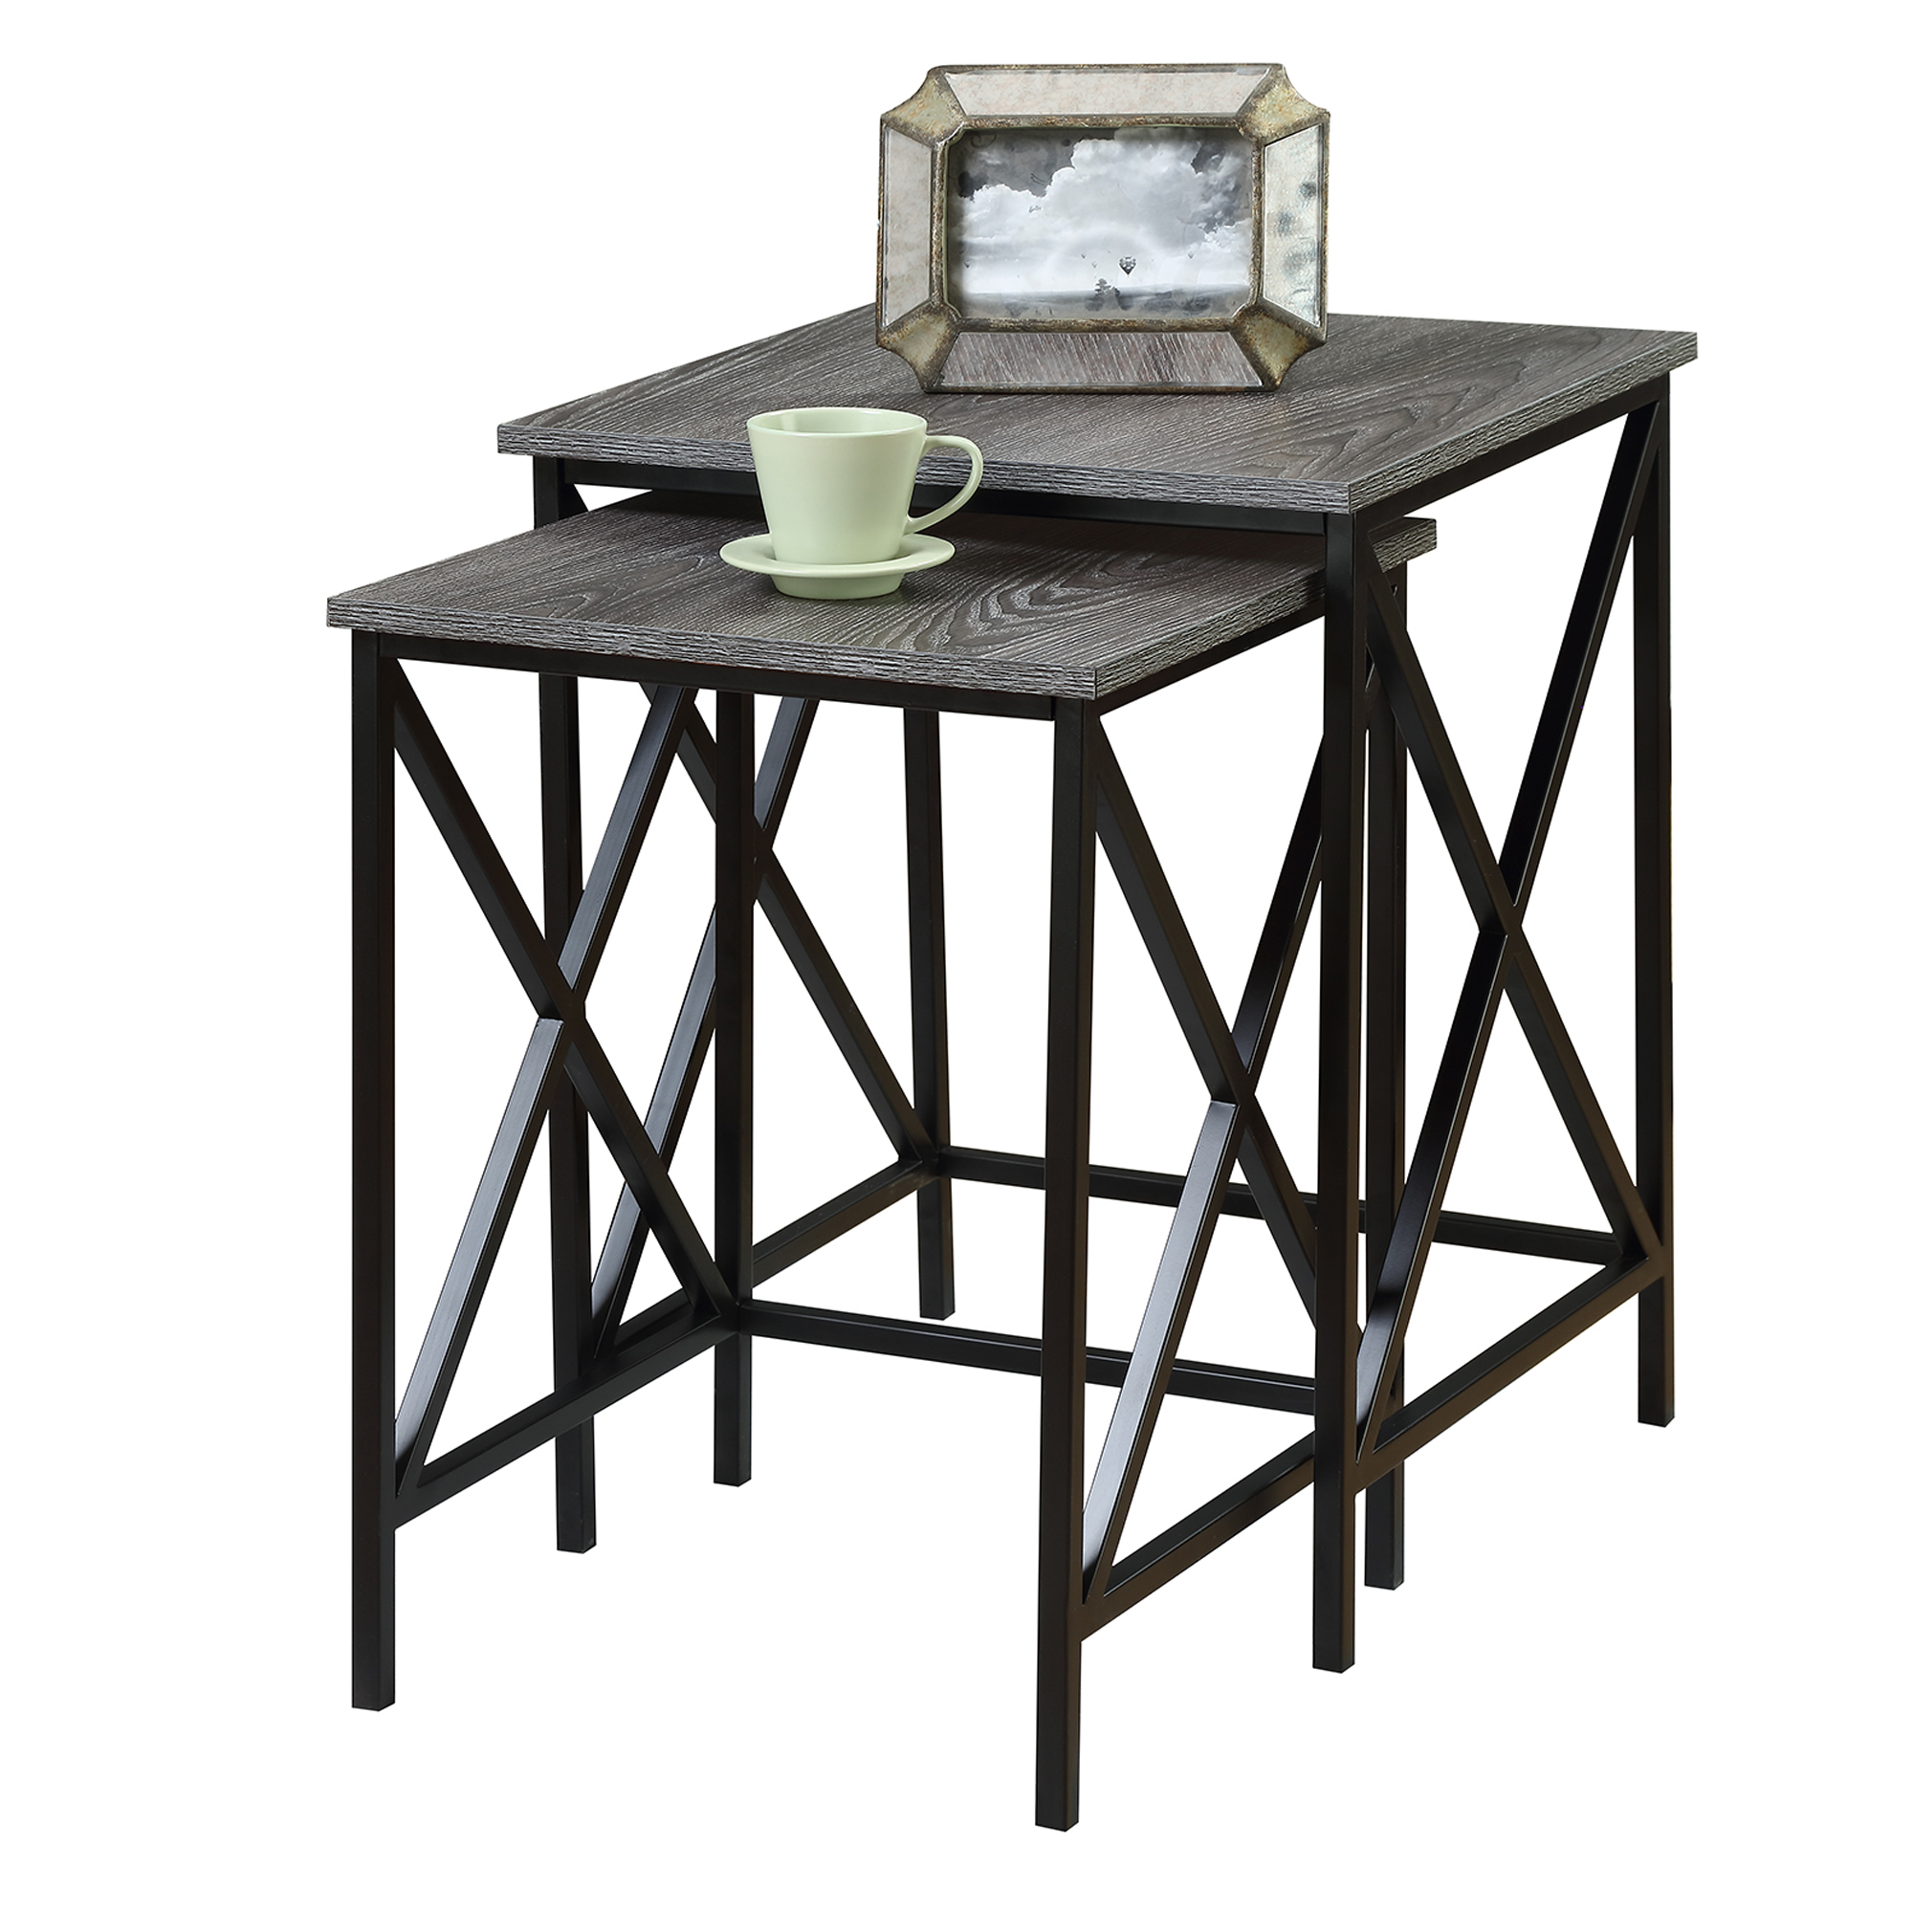 tucson nesting end tables inch high accent knurl round uttermost furniture patio table and chairs with umbrella coffee stools pottery barn occasional unique small plastic garden